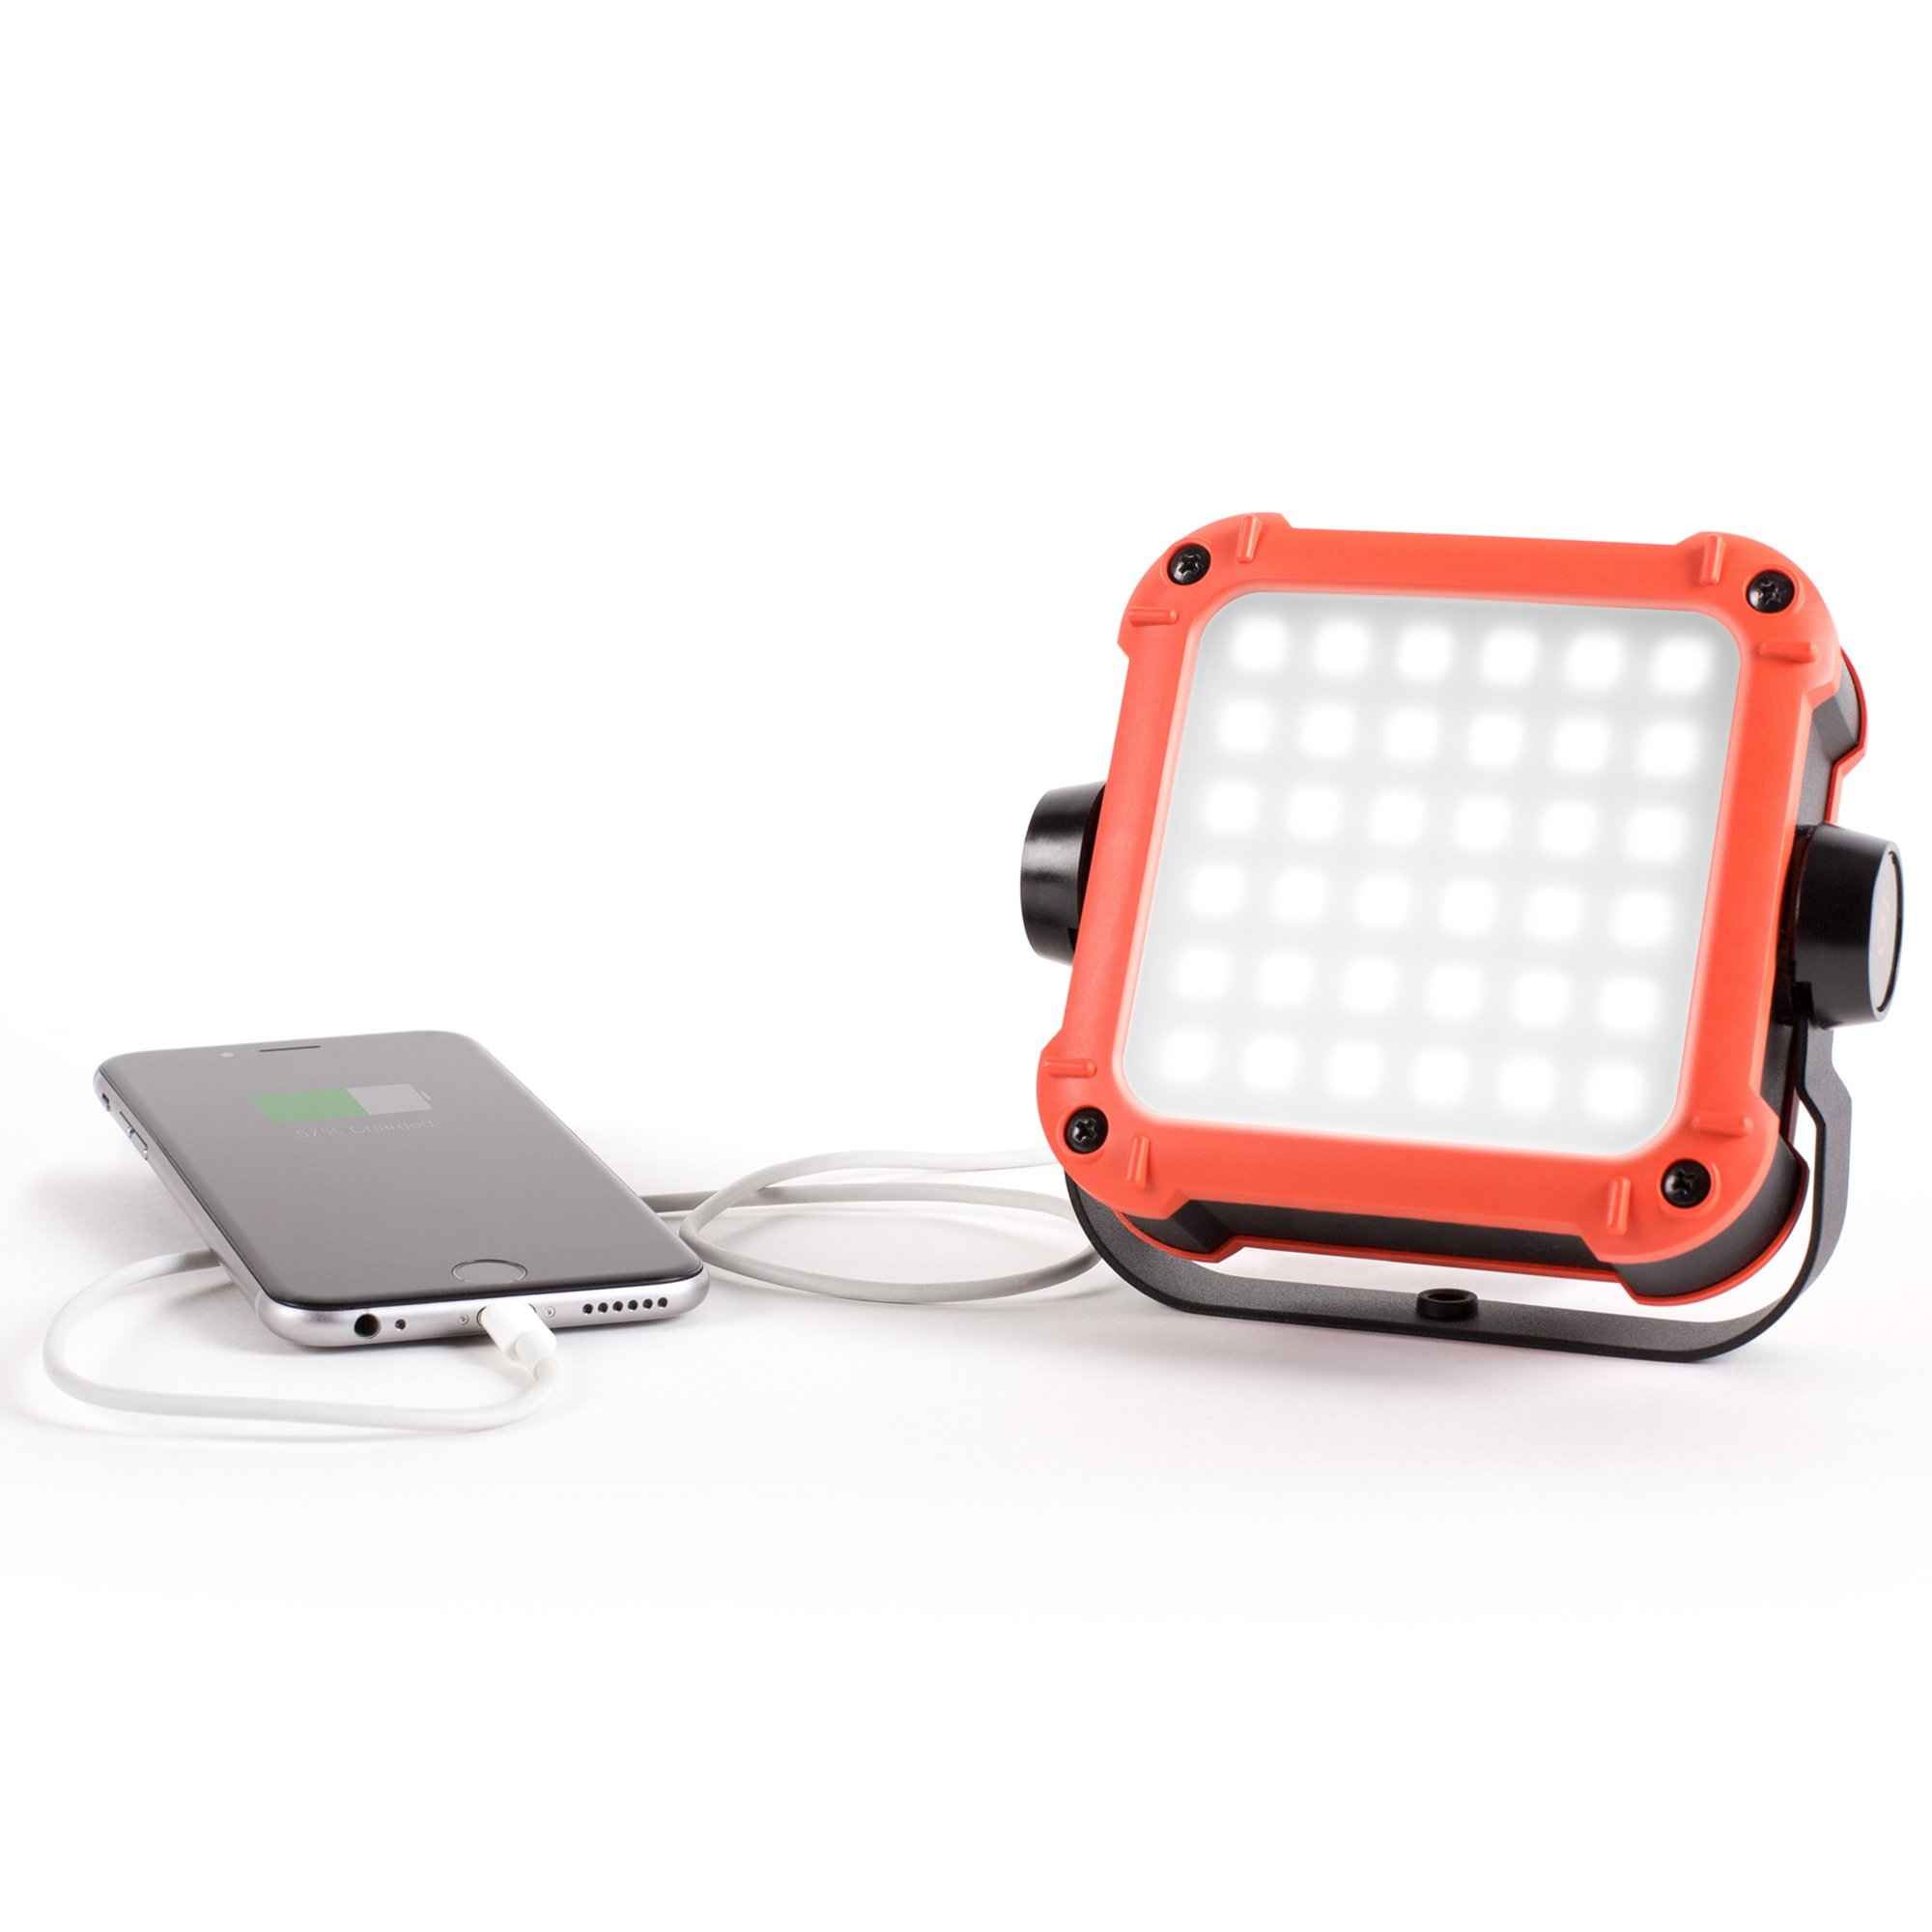 Gear Aid FLUX 20,800 mAh Rechargeable Light and Portable Power Station with 82 LEDs by Gear Aid (Image #4)